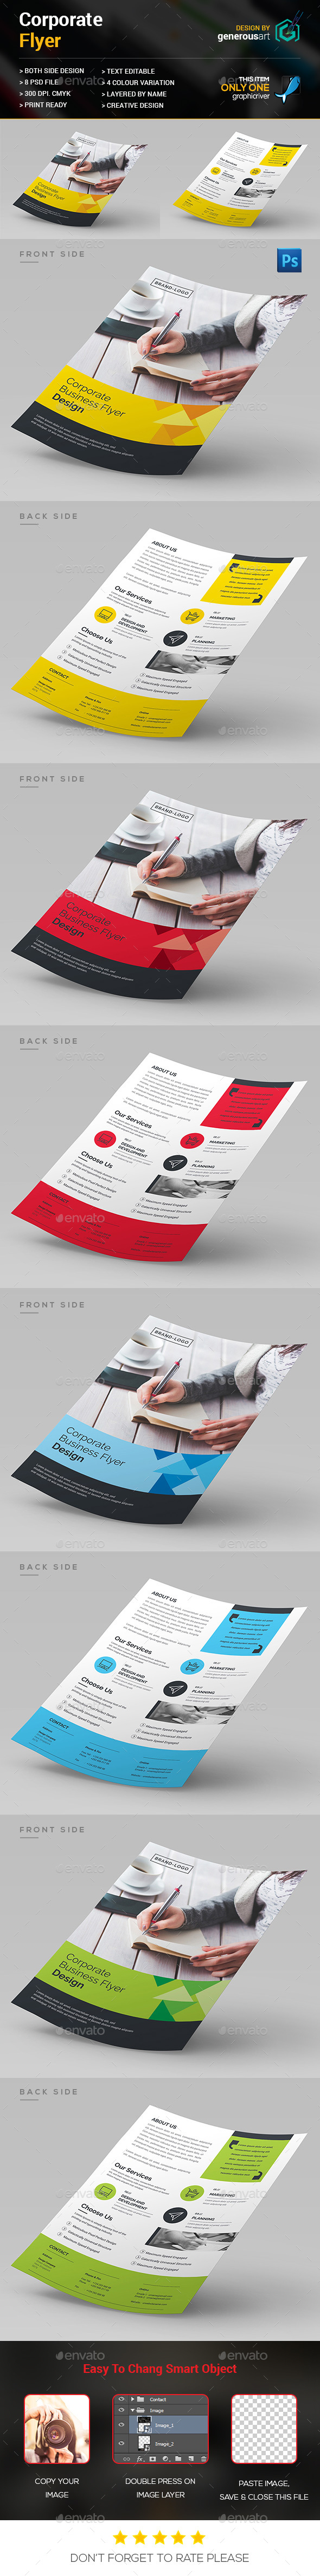 Corporate Flyer Template - Corporate Flyers